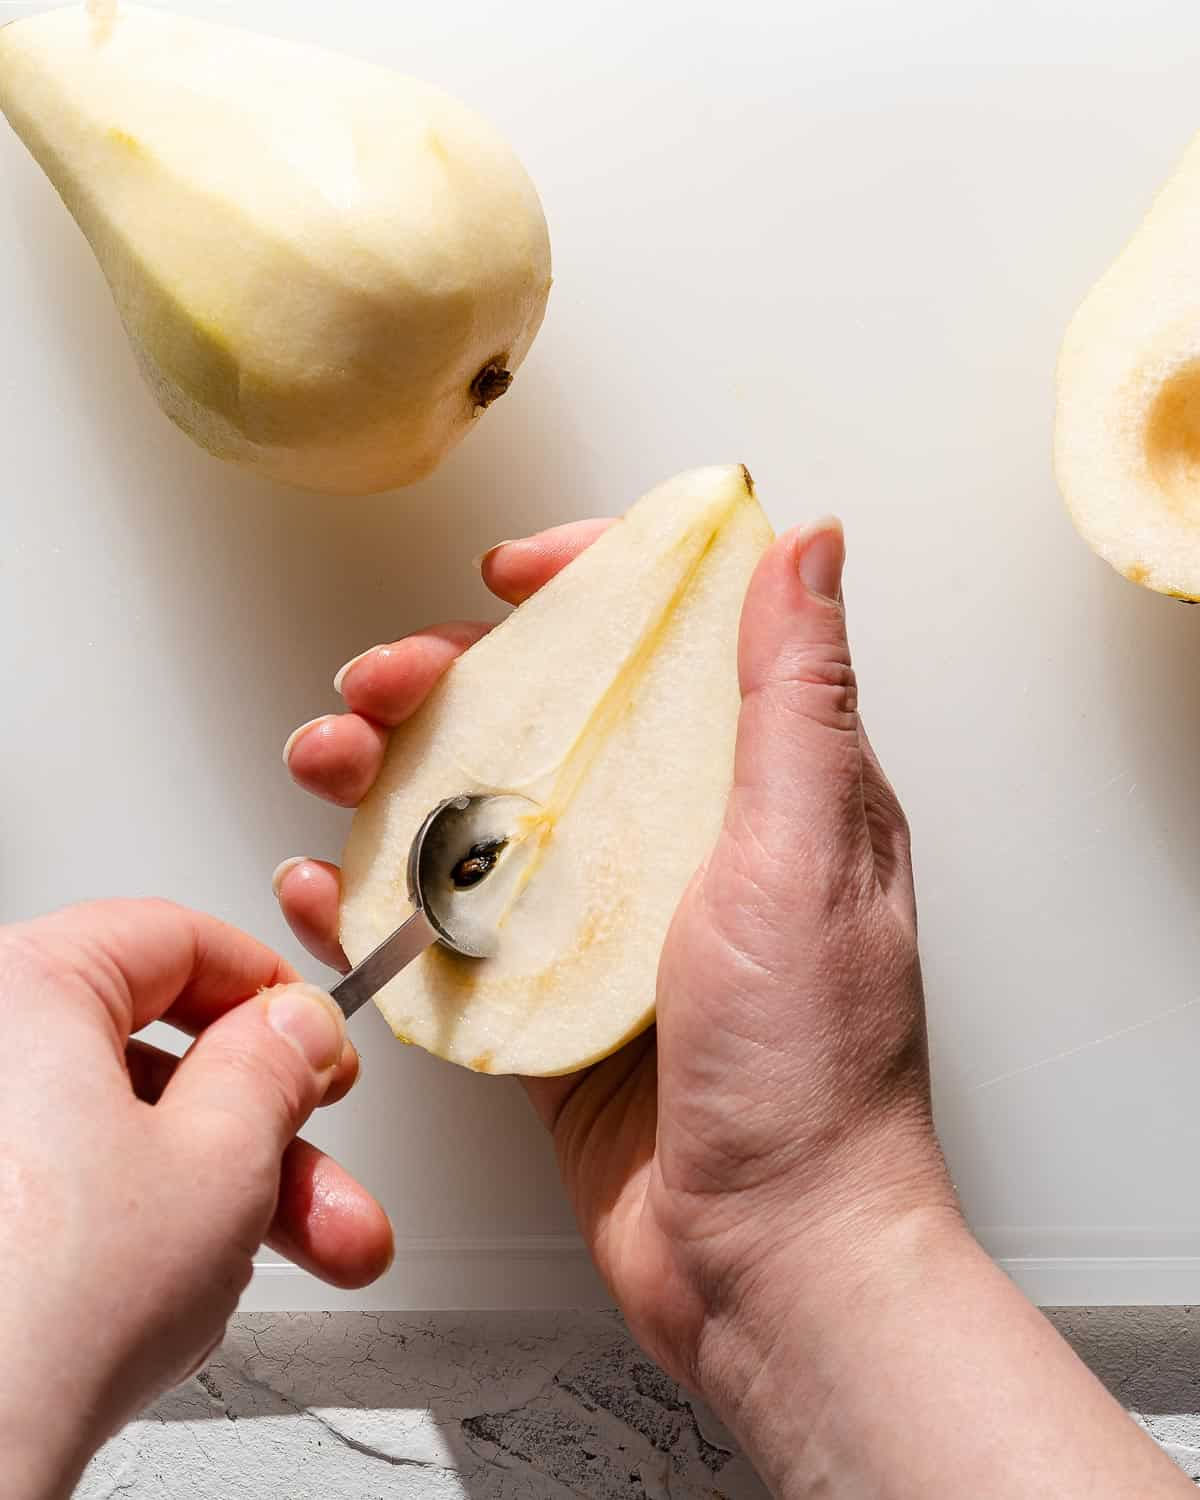 teaspoon scooping seeds out of peeled pear